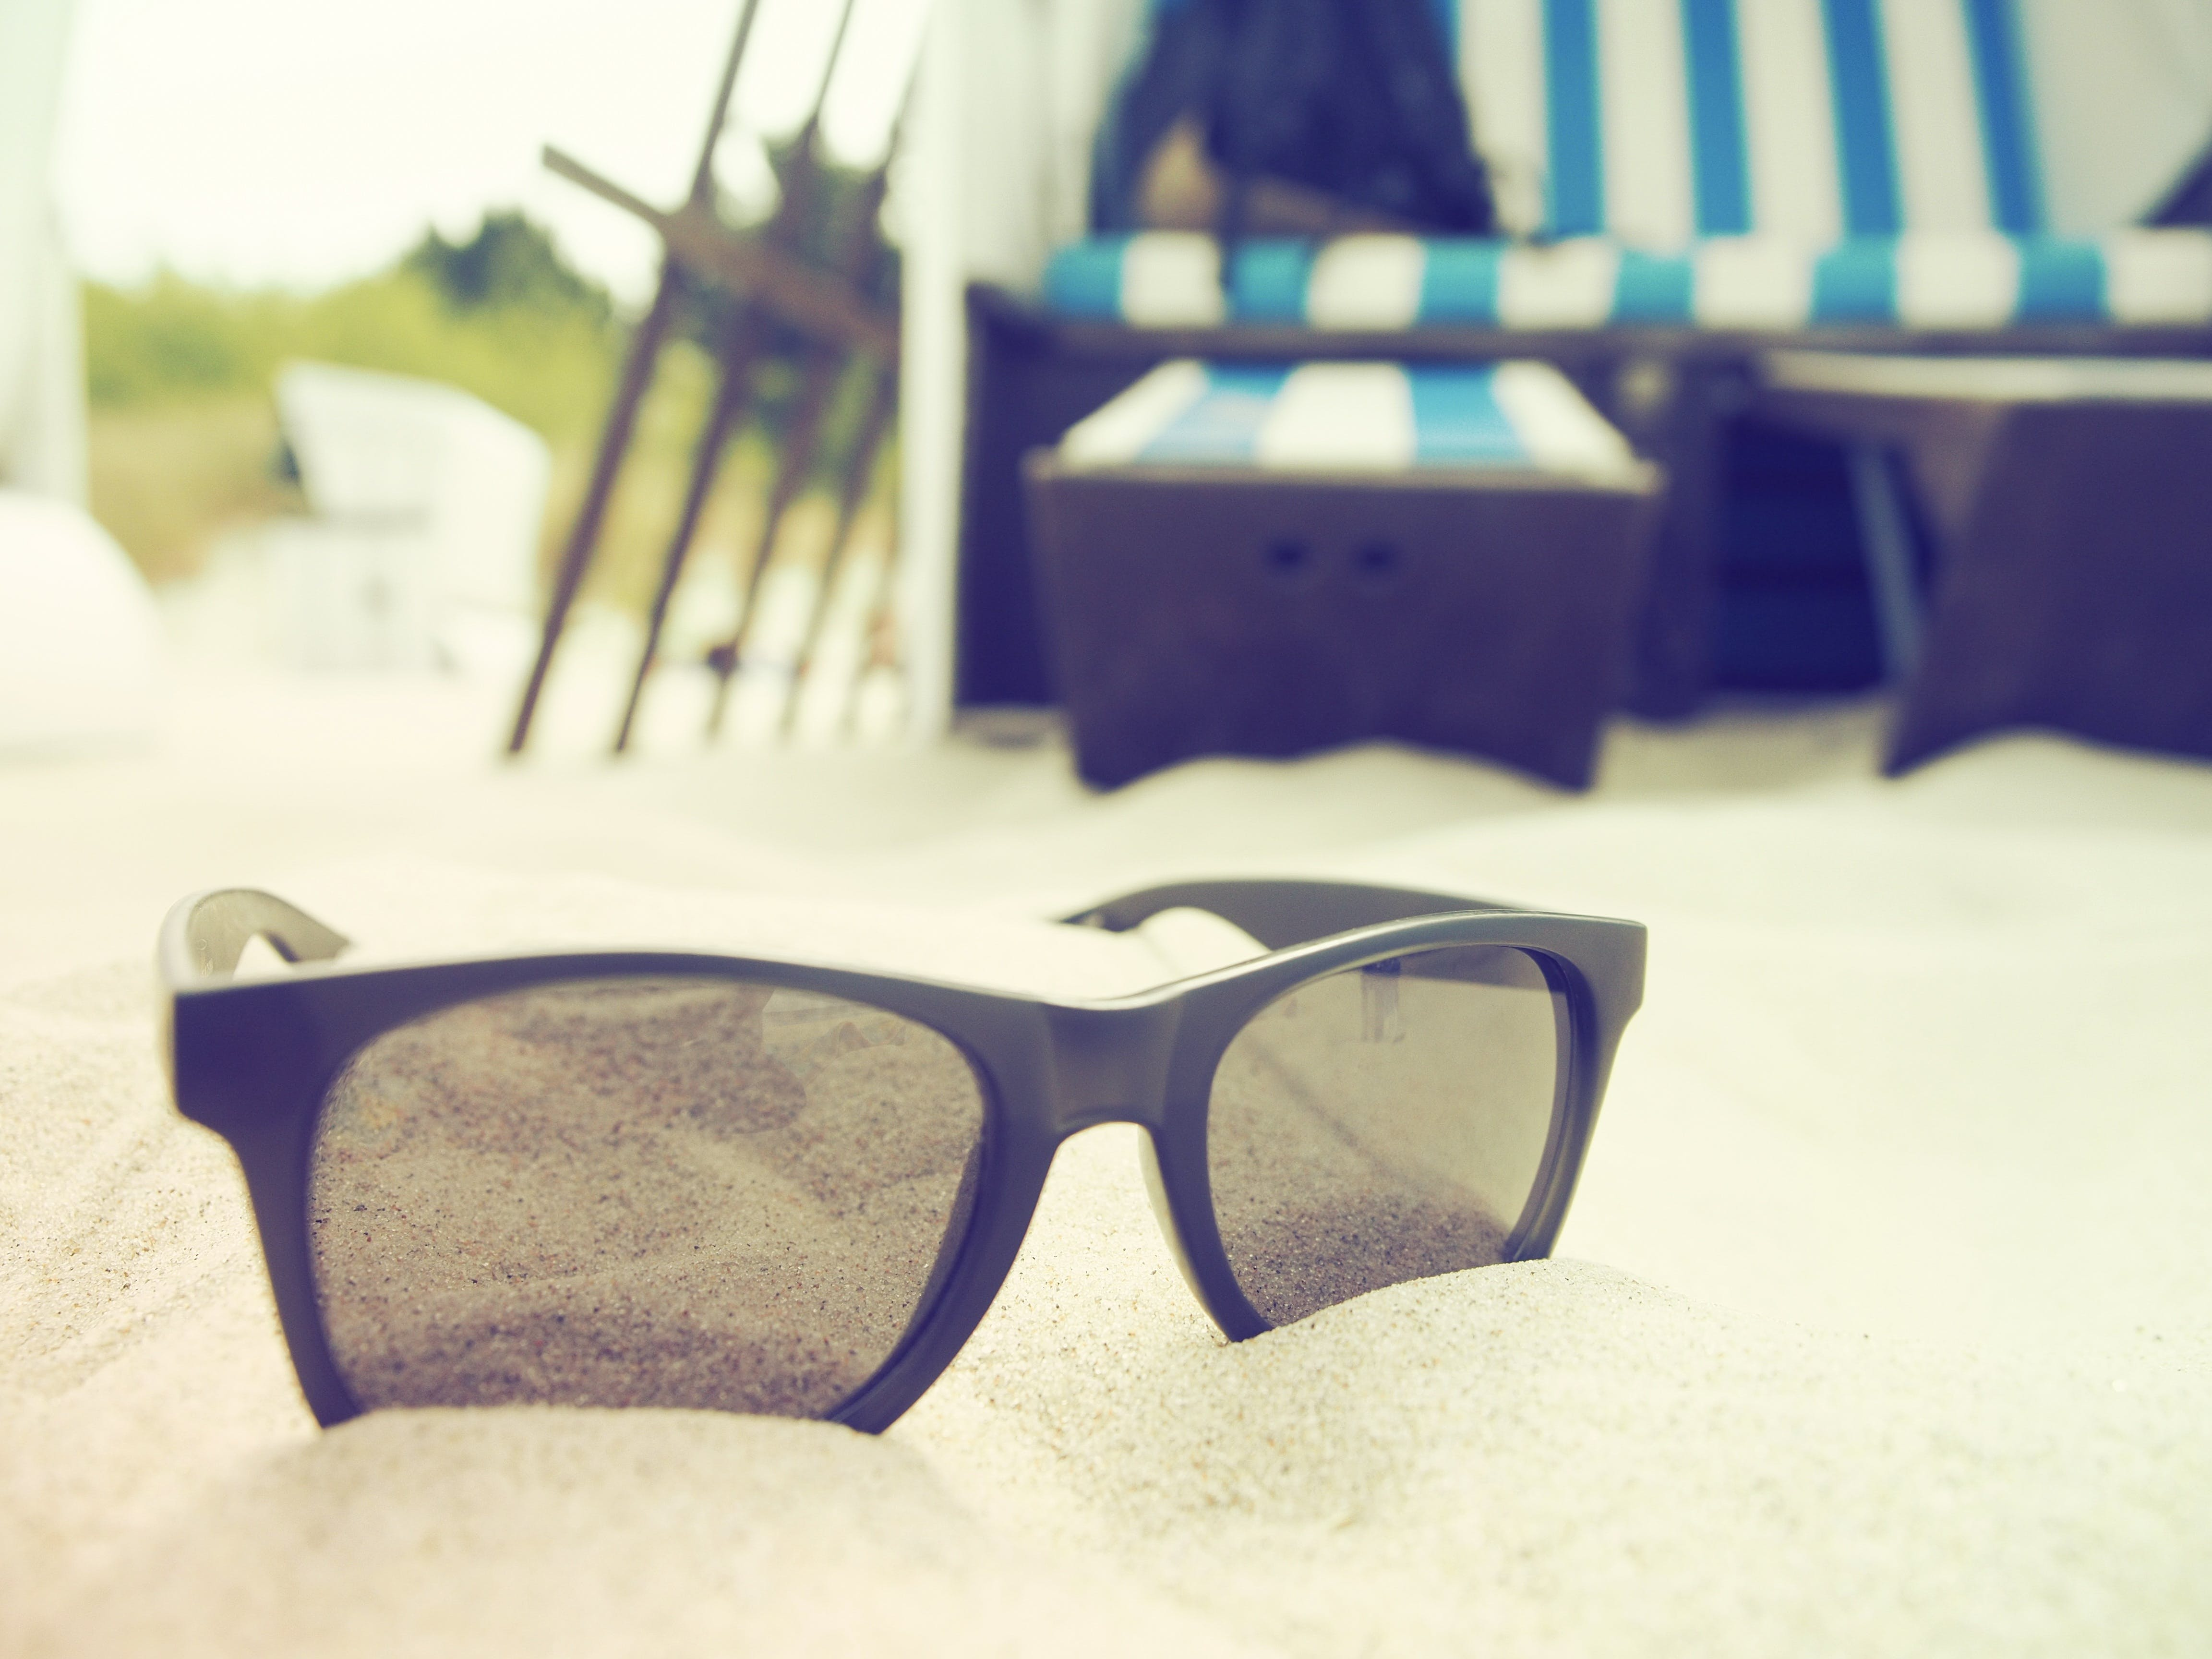 Selective Focus Photography of Black-framed Sunglasses on Sand